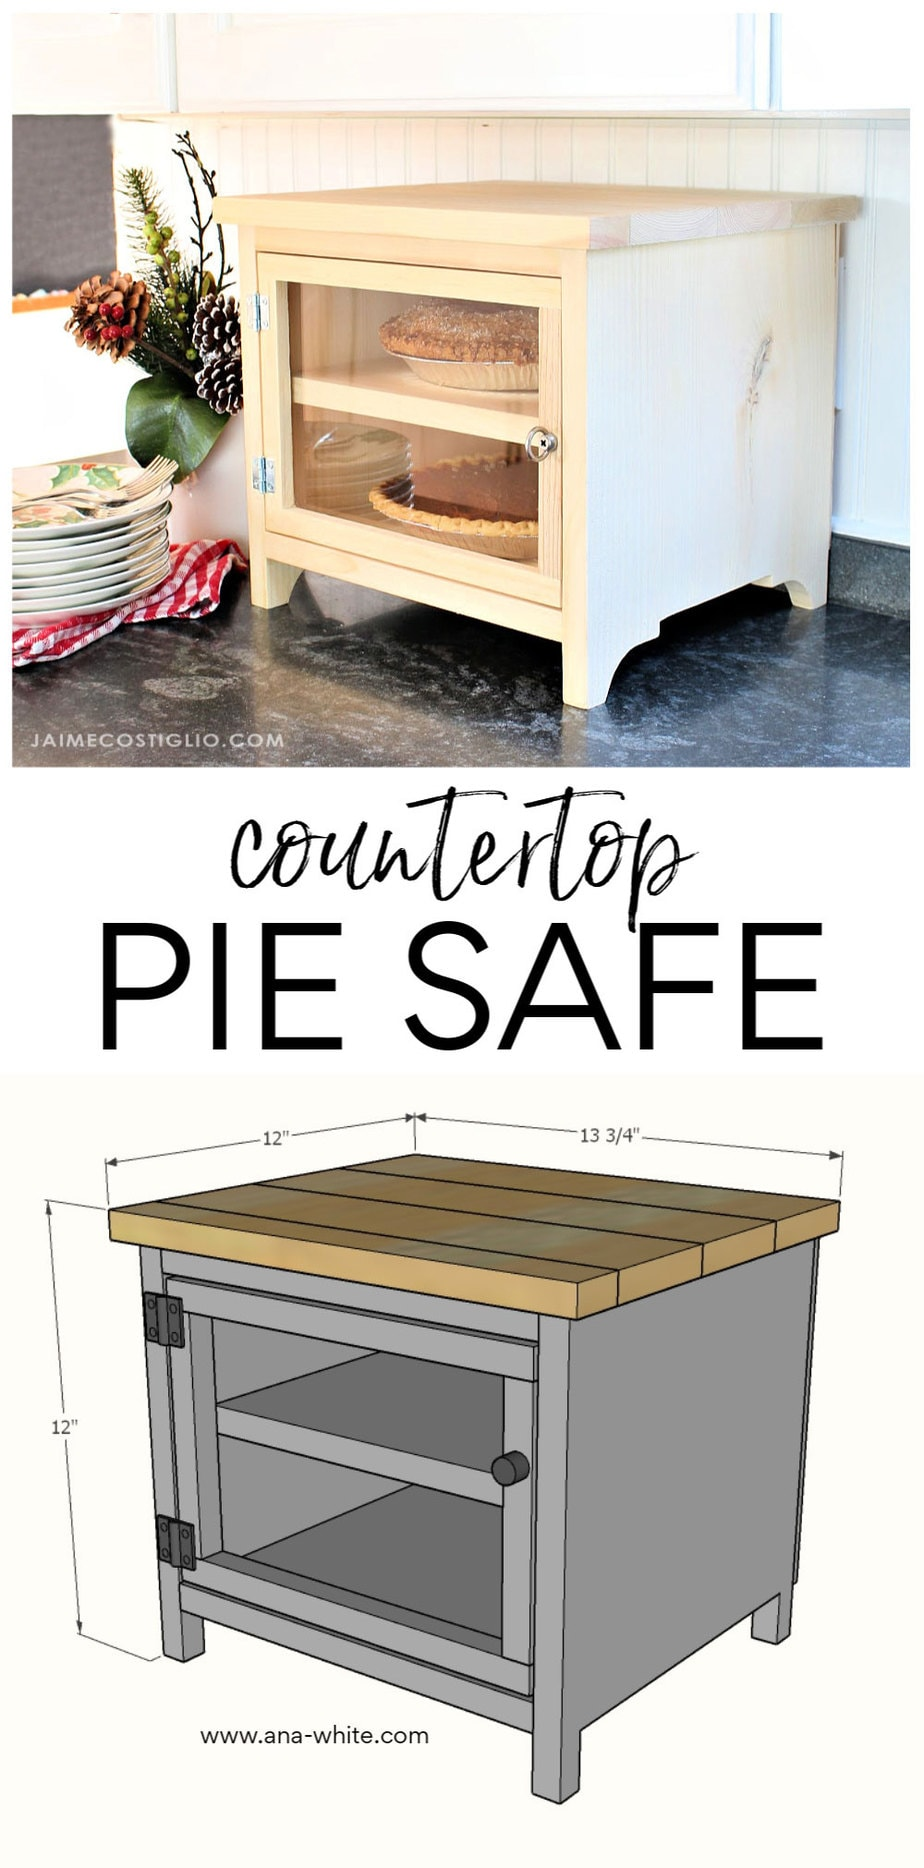 diy countertop pie safe free plans